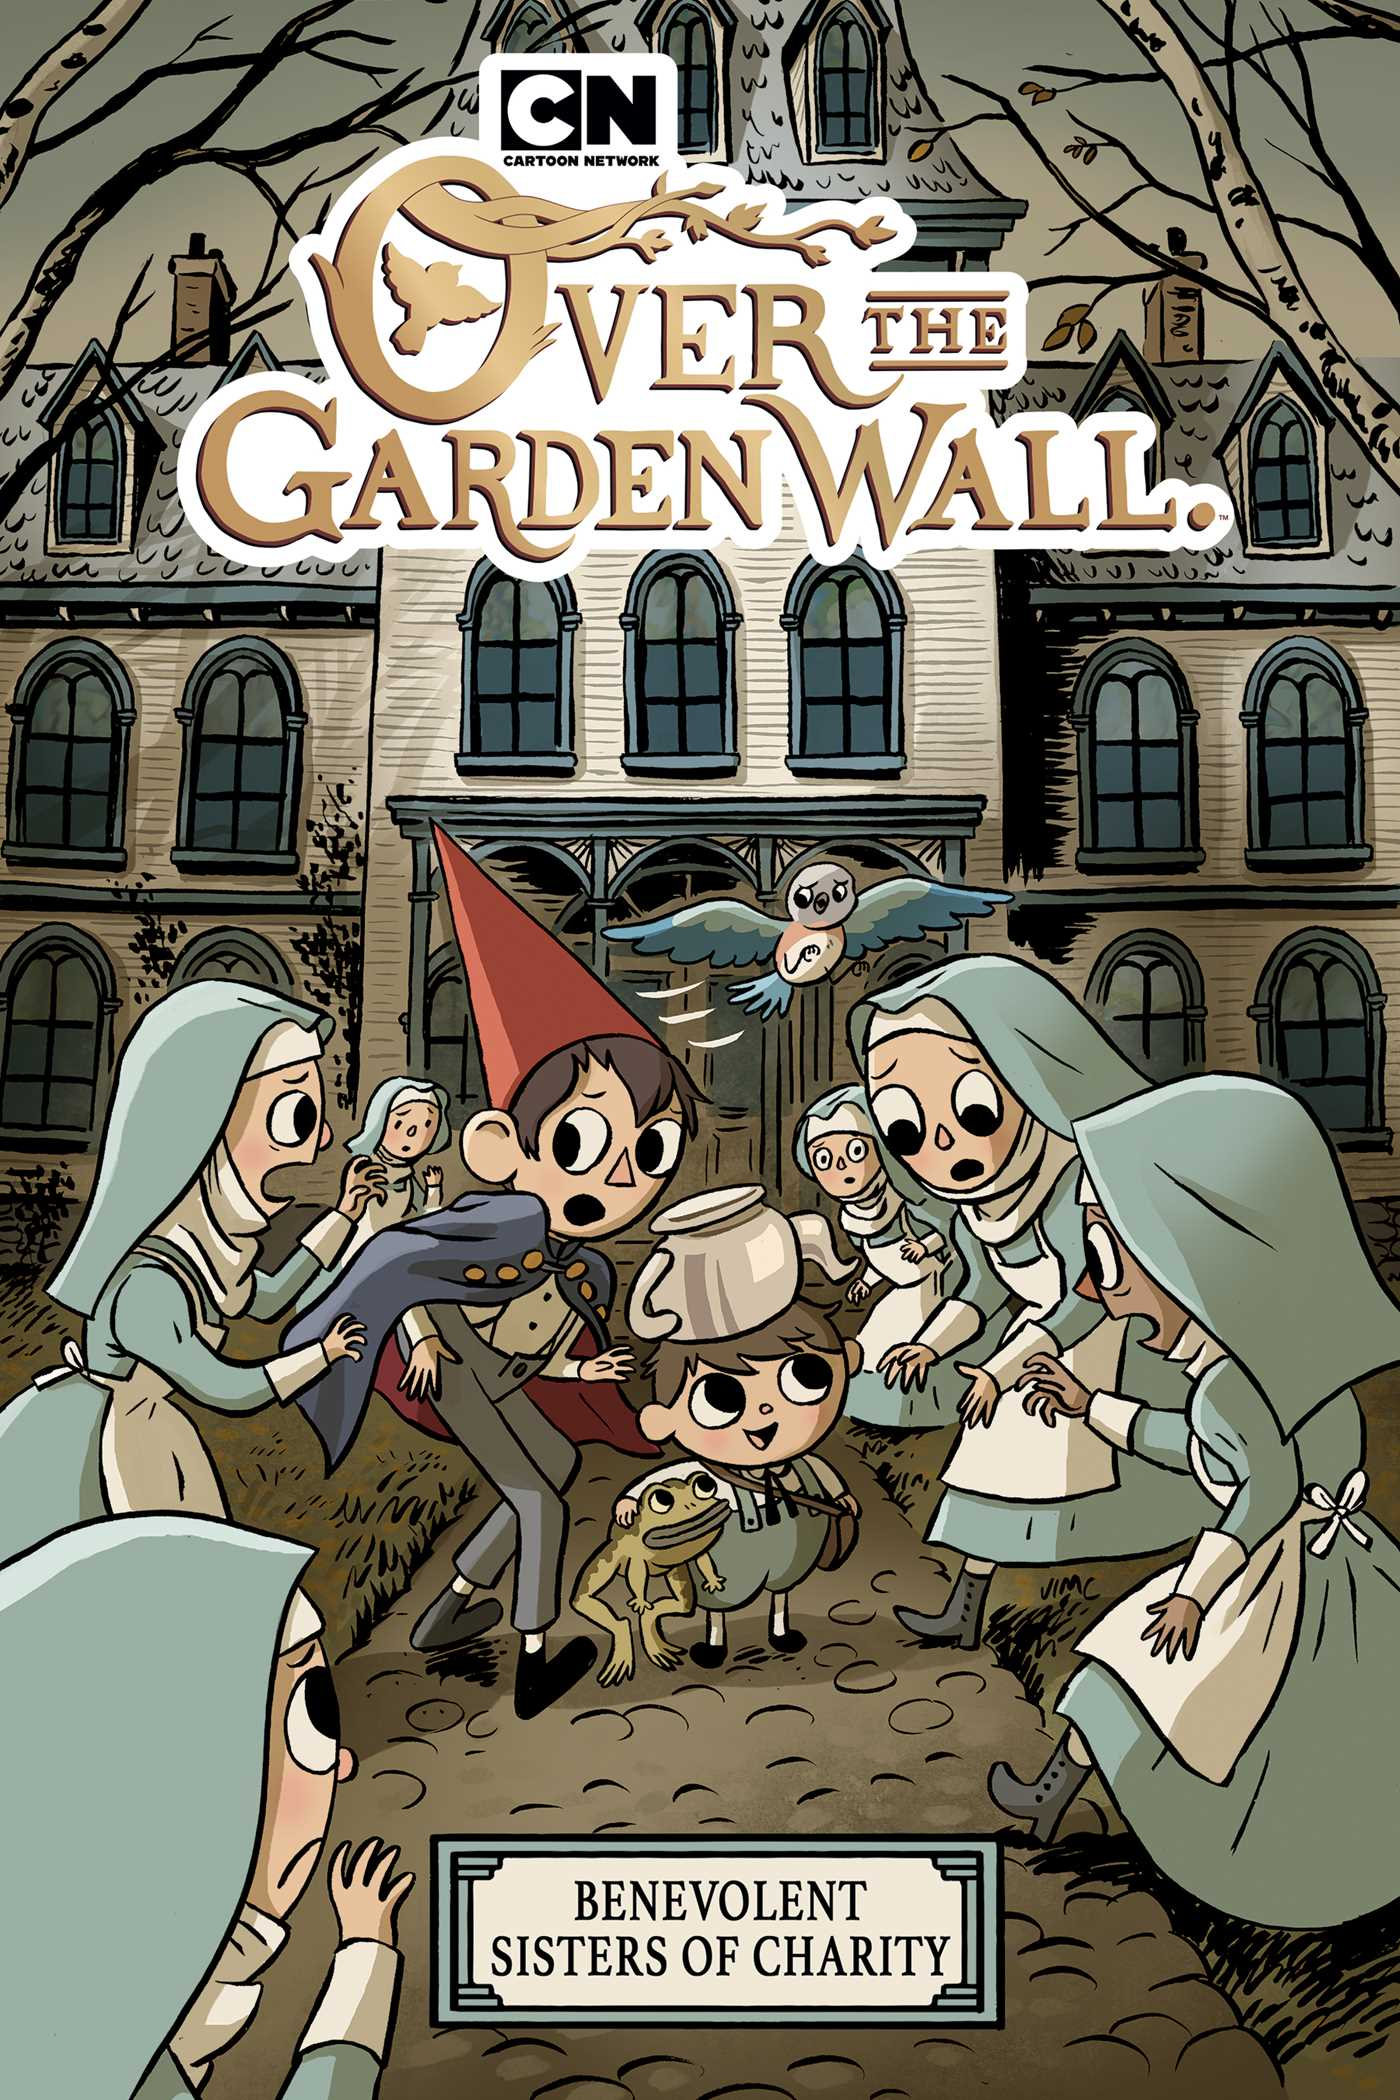 Over the Garden Wall: Benevolent Sisters of Charity OGN by Sam Johns, Jim Campbell